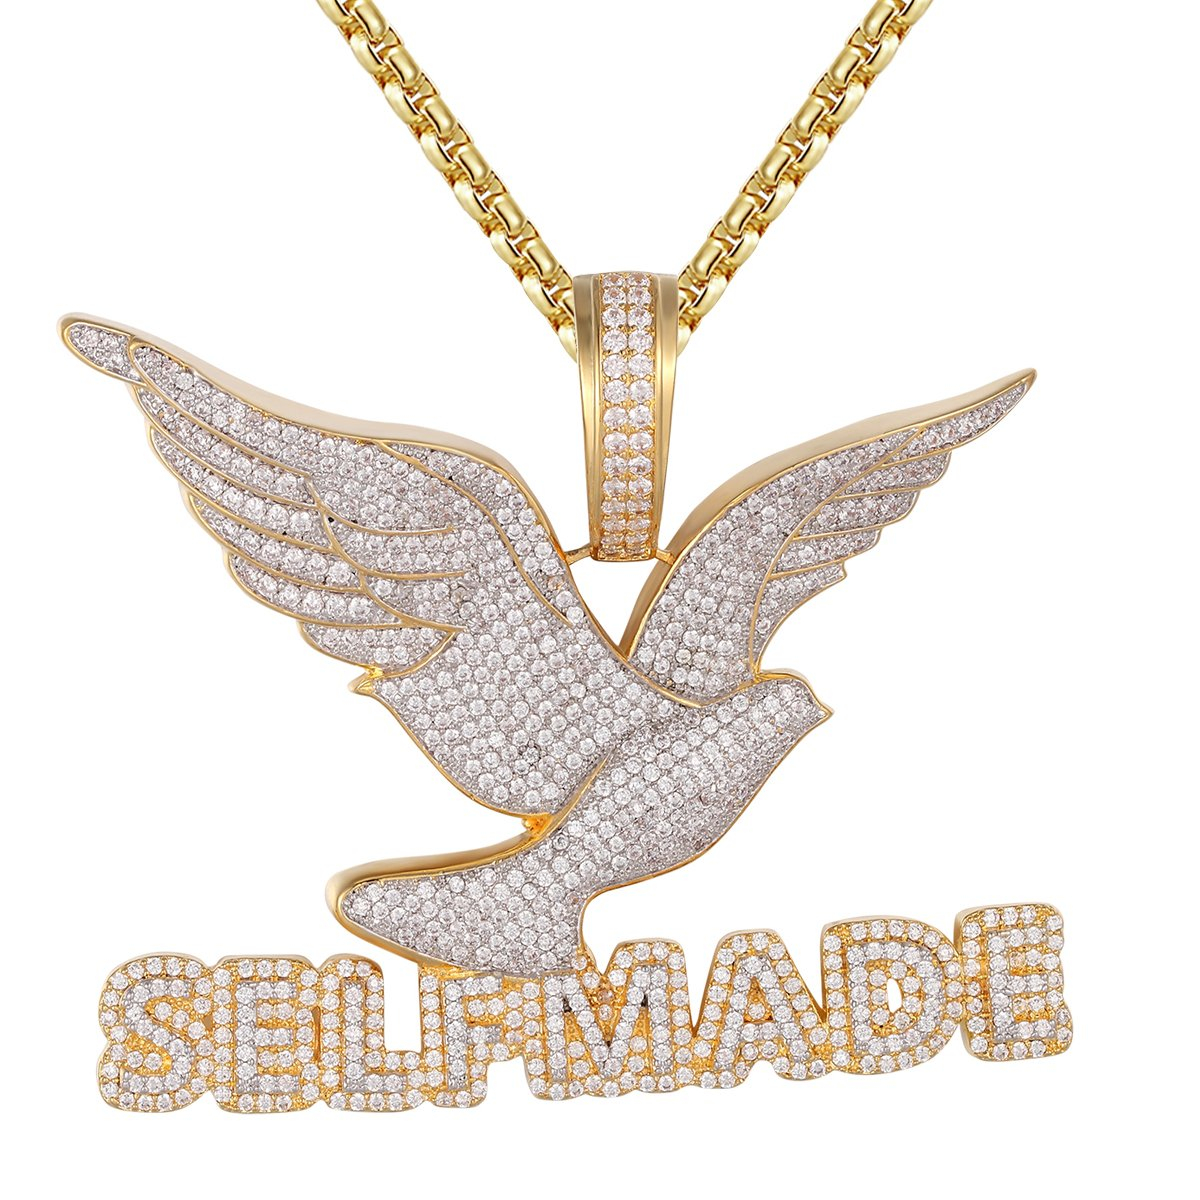 Image of Self Made Flying Bird Peace .925 Silver Bling Rapper Pendant Chain